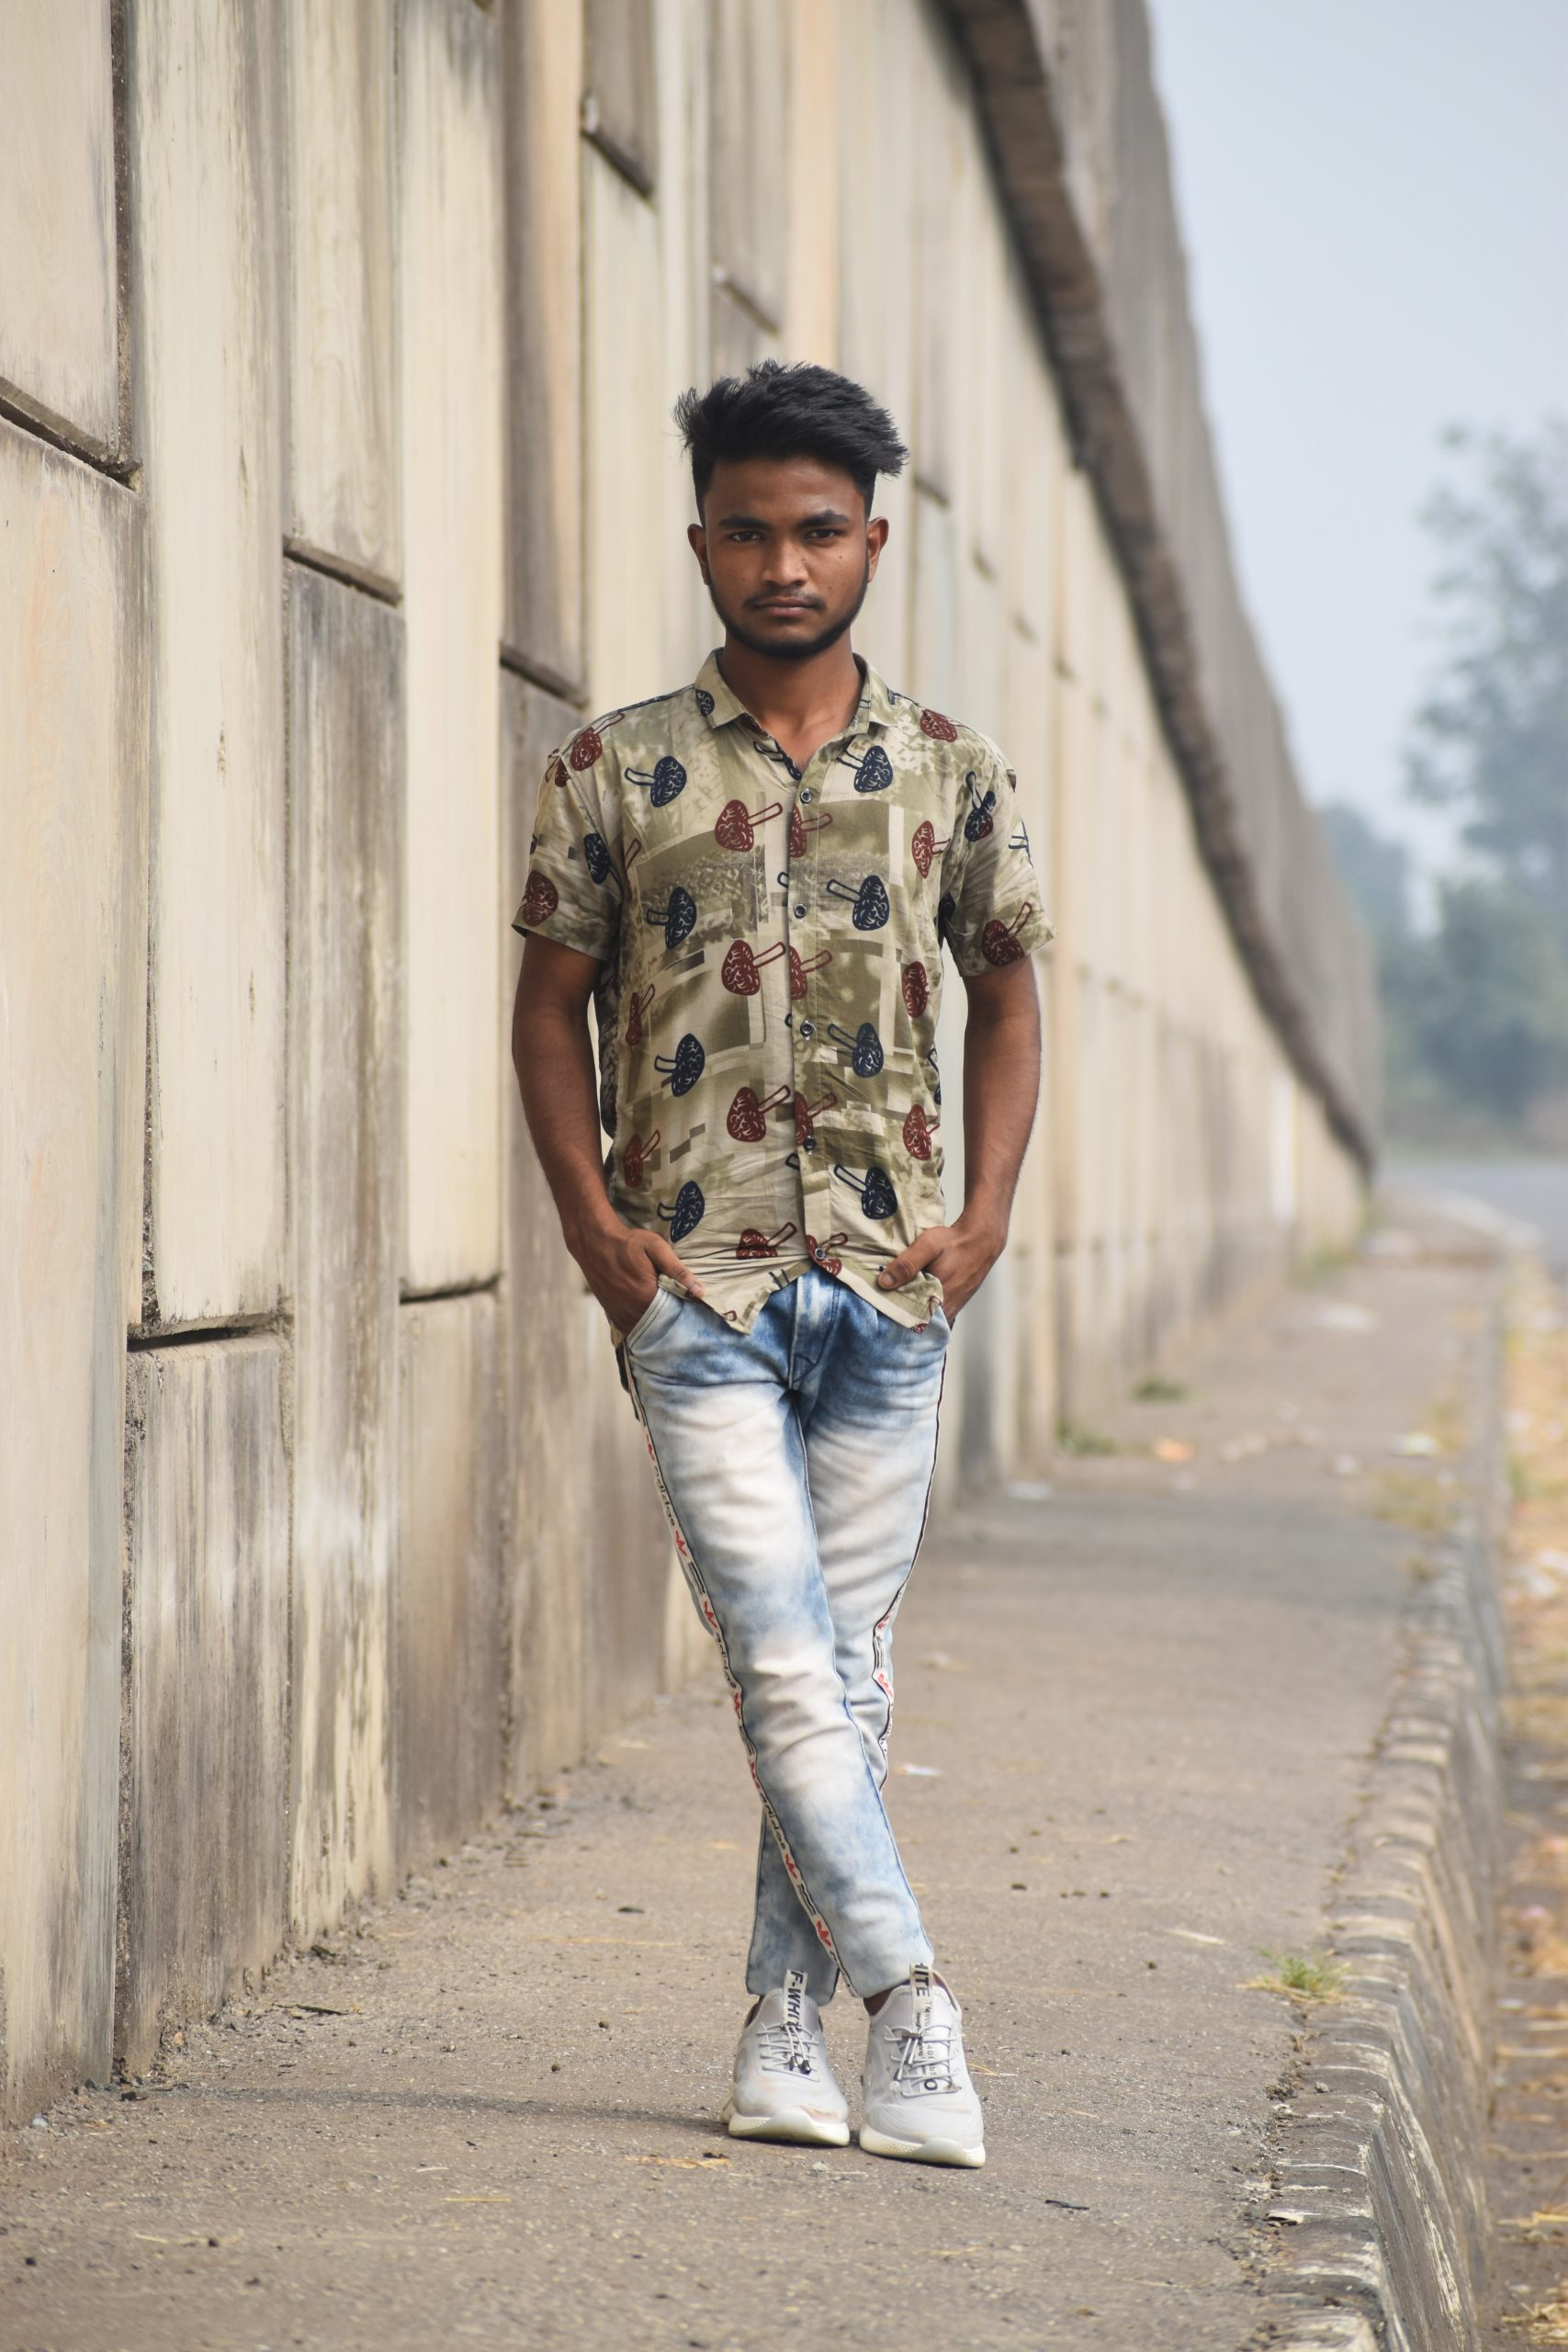 Boy posing Road side